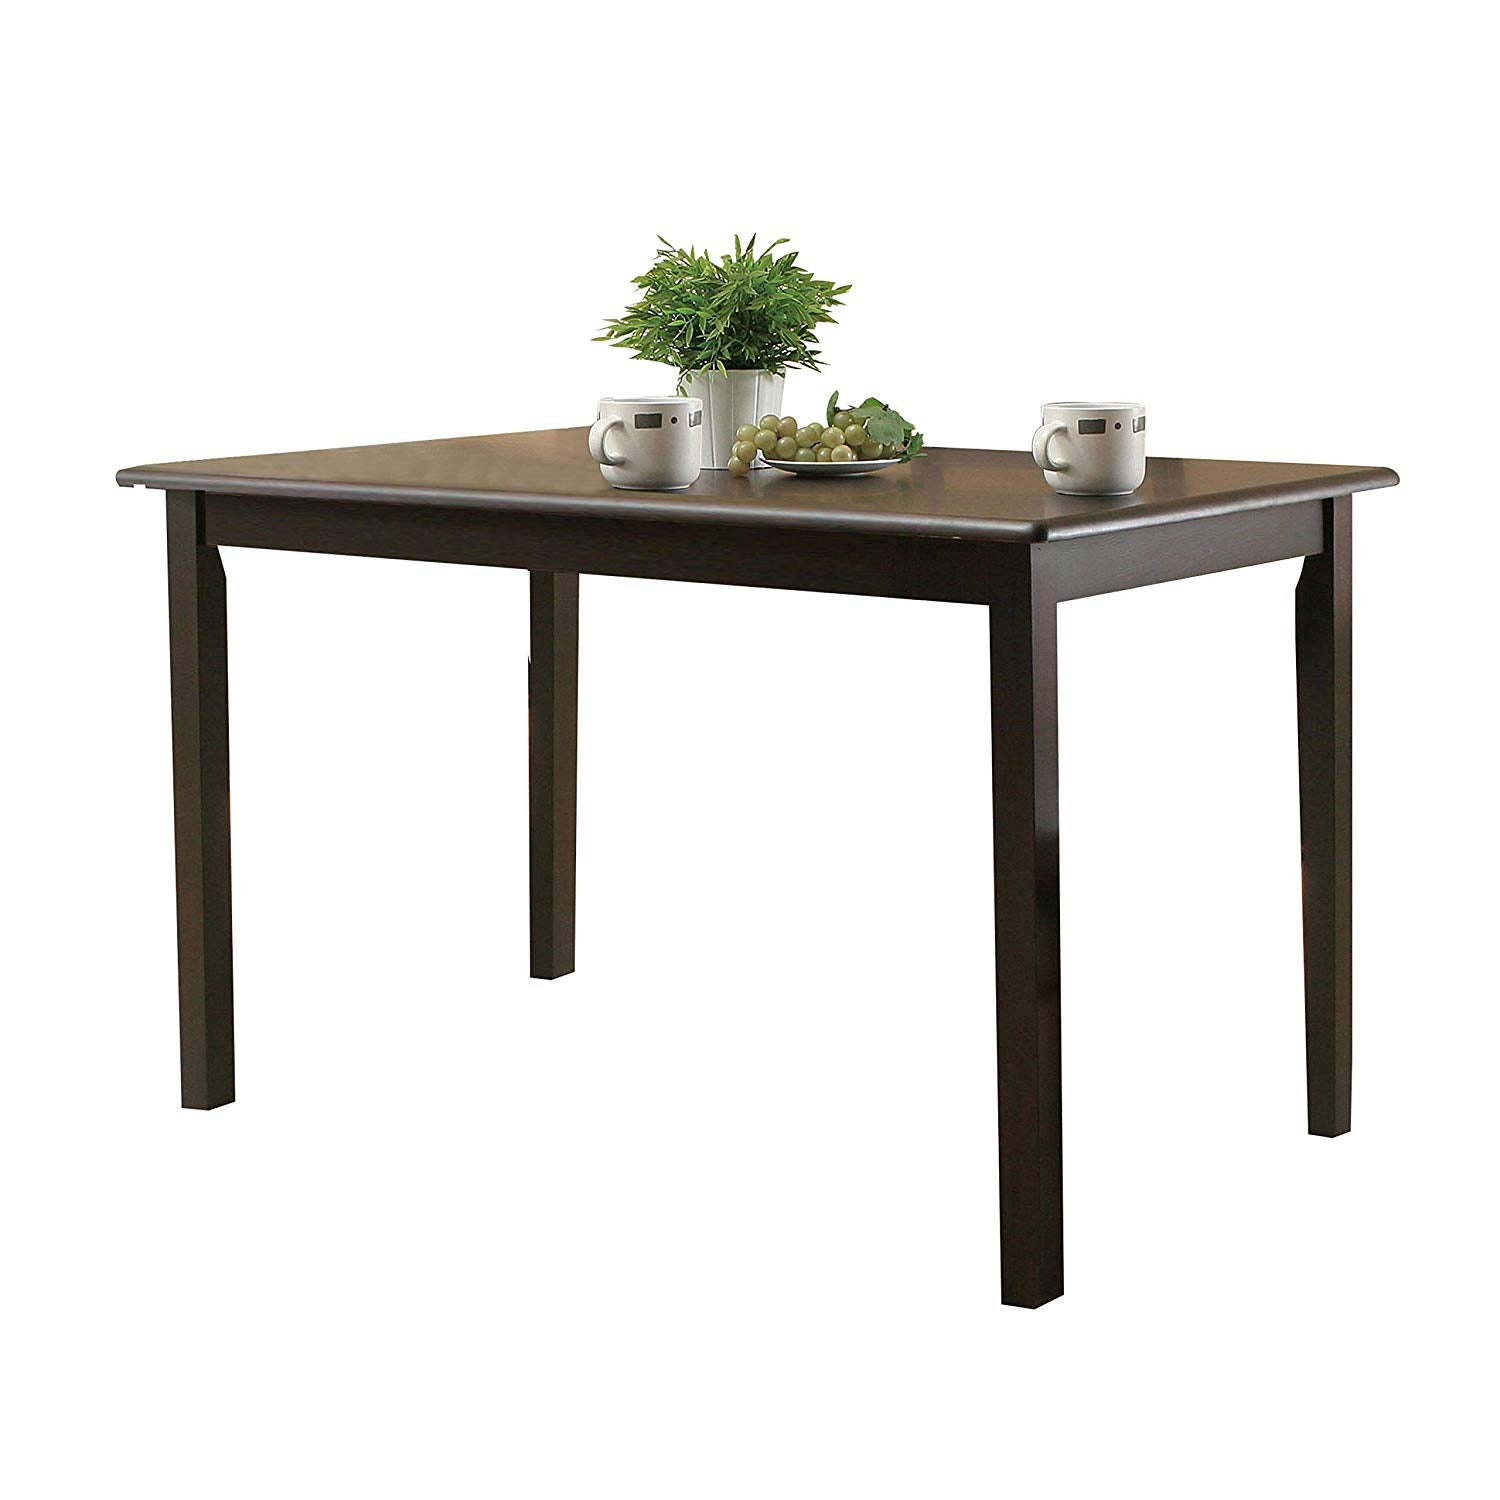 Acme 00860 Serra Cappuccino Wood Finish Dining Table